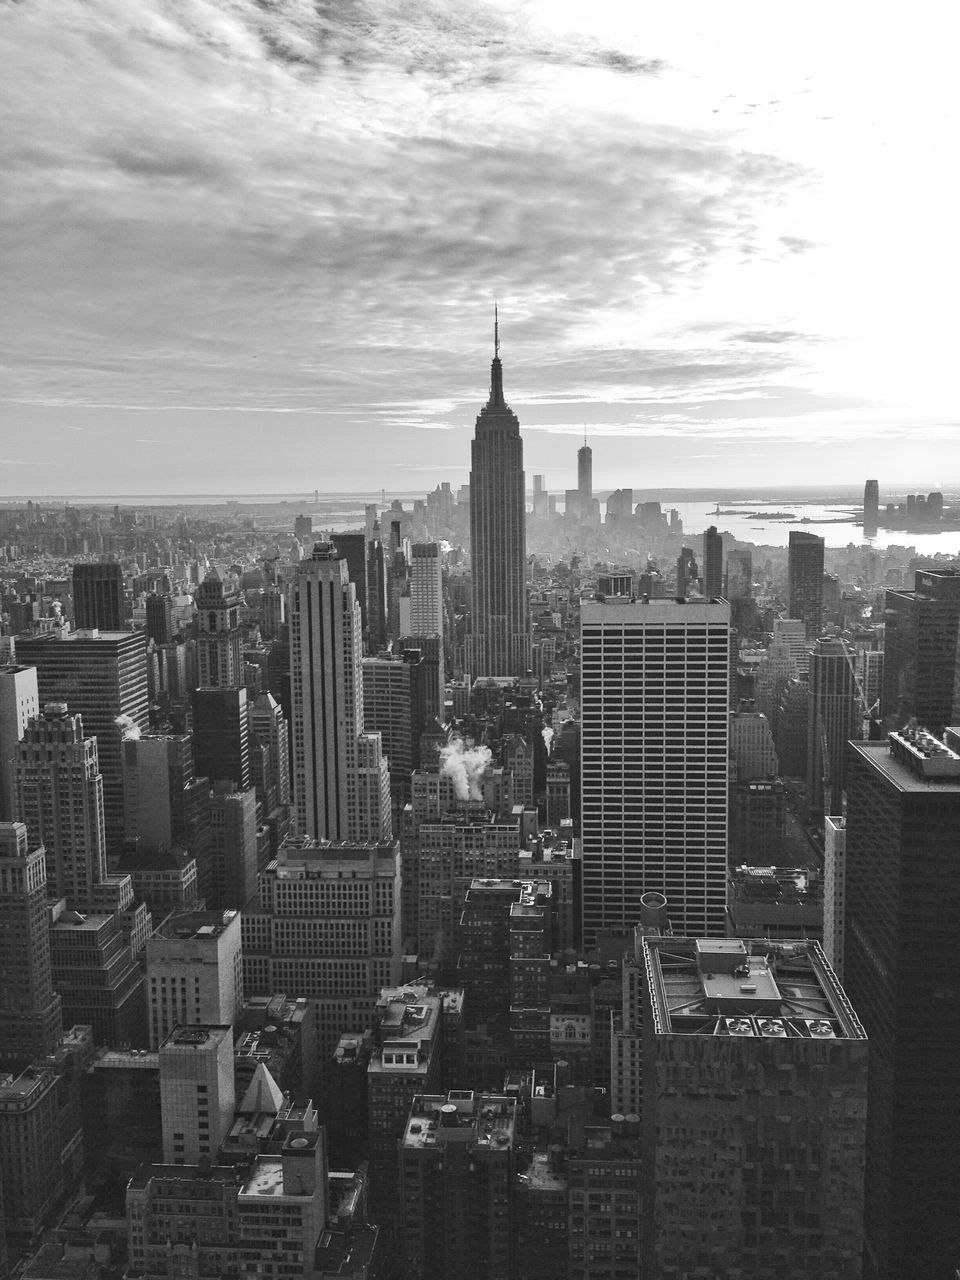 Empire State Building And Cityscape Against Sky